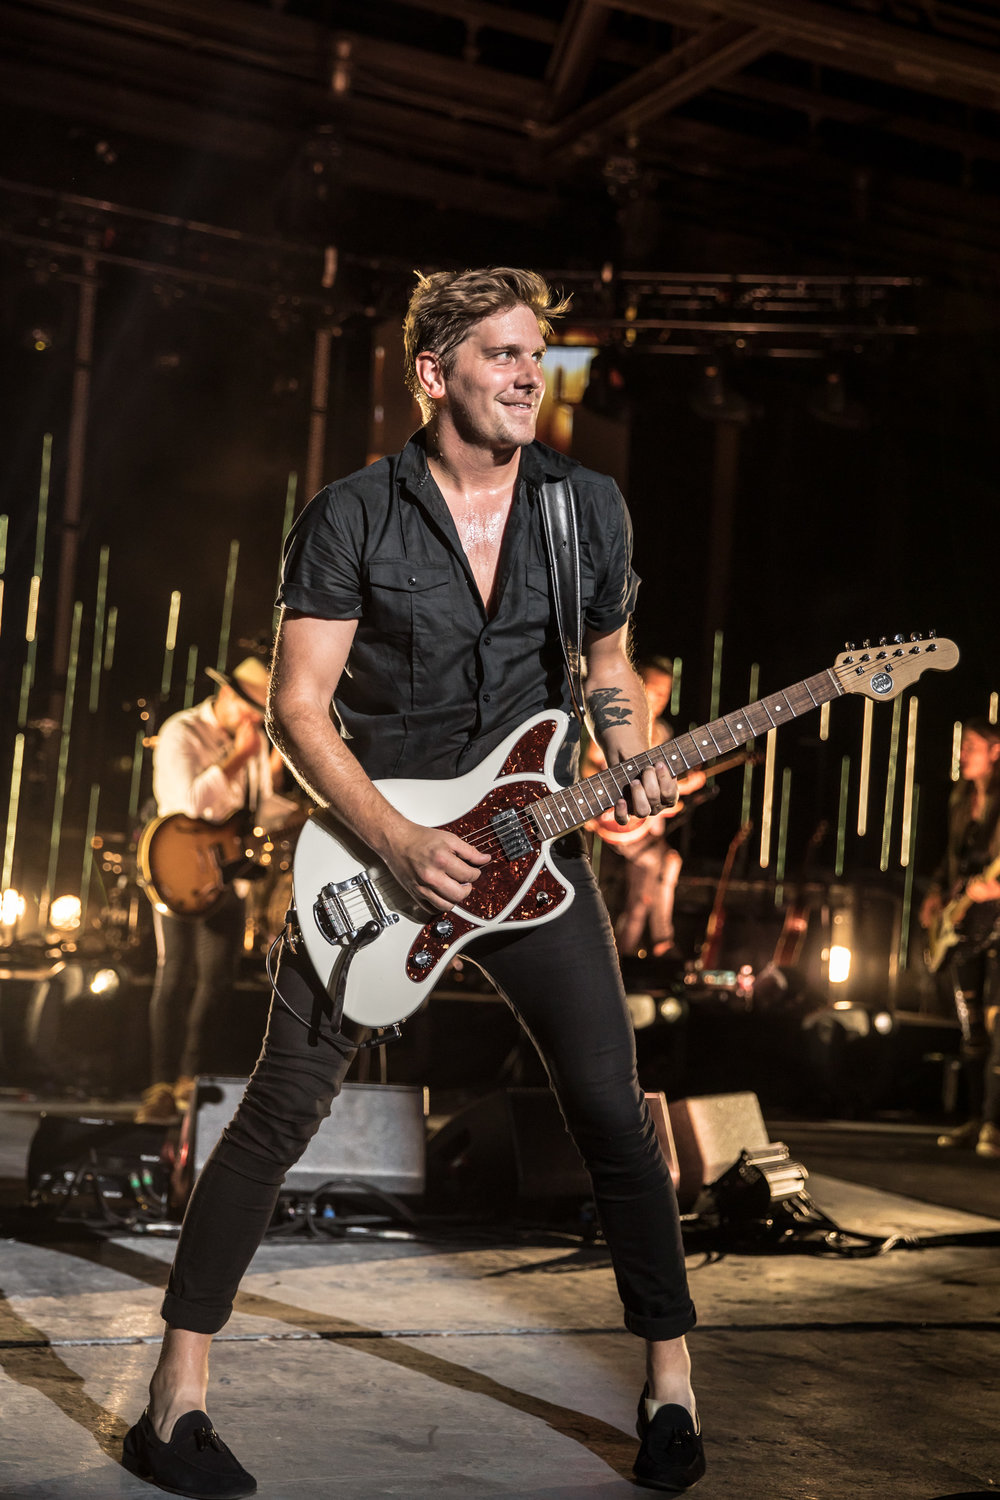 NA-08122018-NEEDTOBREATHE23.jpg